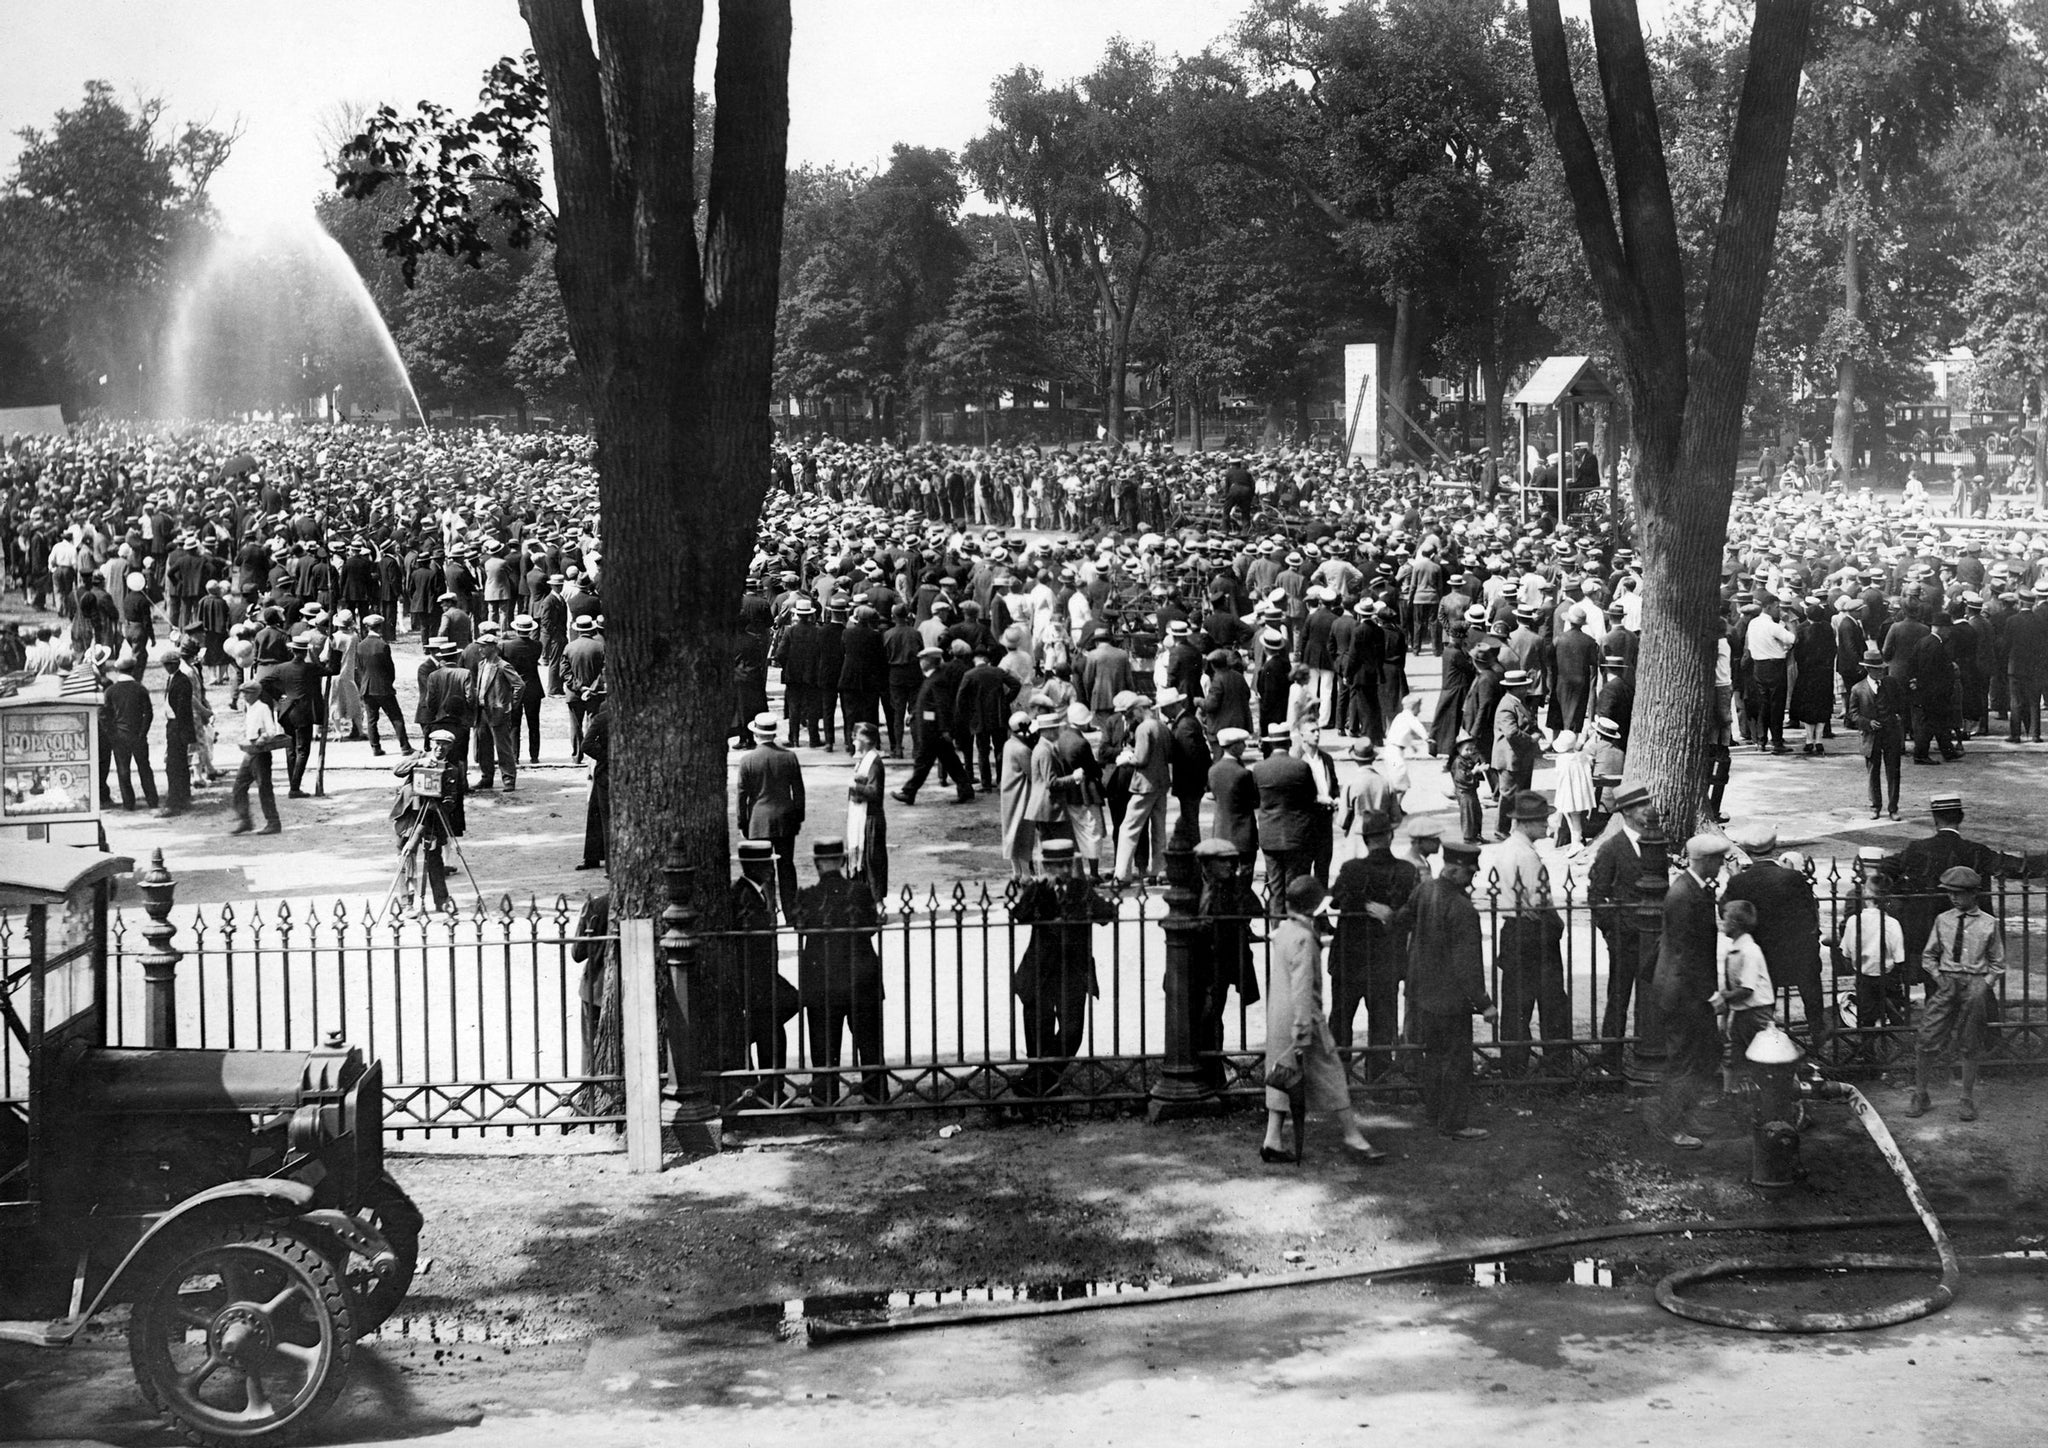 Hundreds gather to watch firemen compete in the muster at the Salem Tercentenary in 1926. -- Courtesy Phillips Library, Peabody Essex Museum